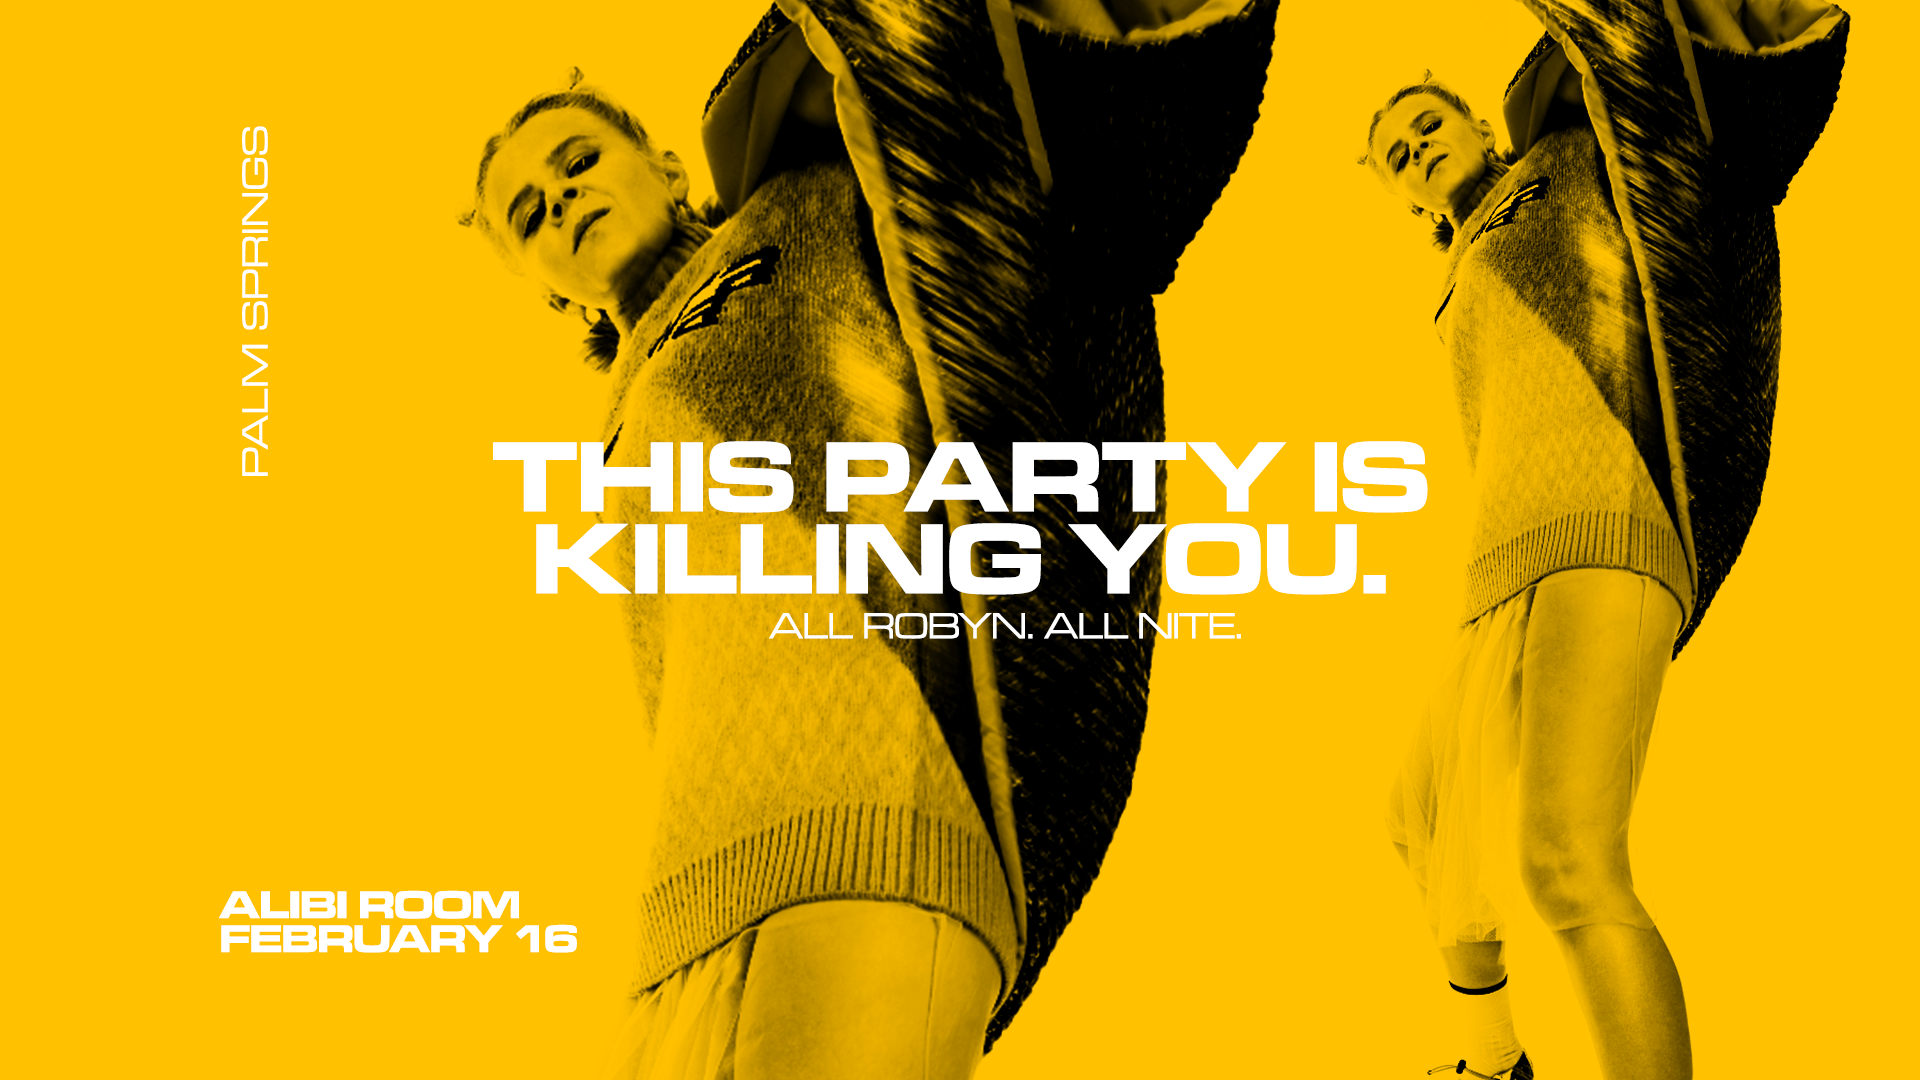 (Canceled) This Party Is Killing You: A Night of All Robyn Everything! Palm Springs Edition Feb 16th